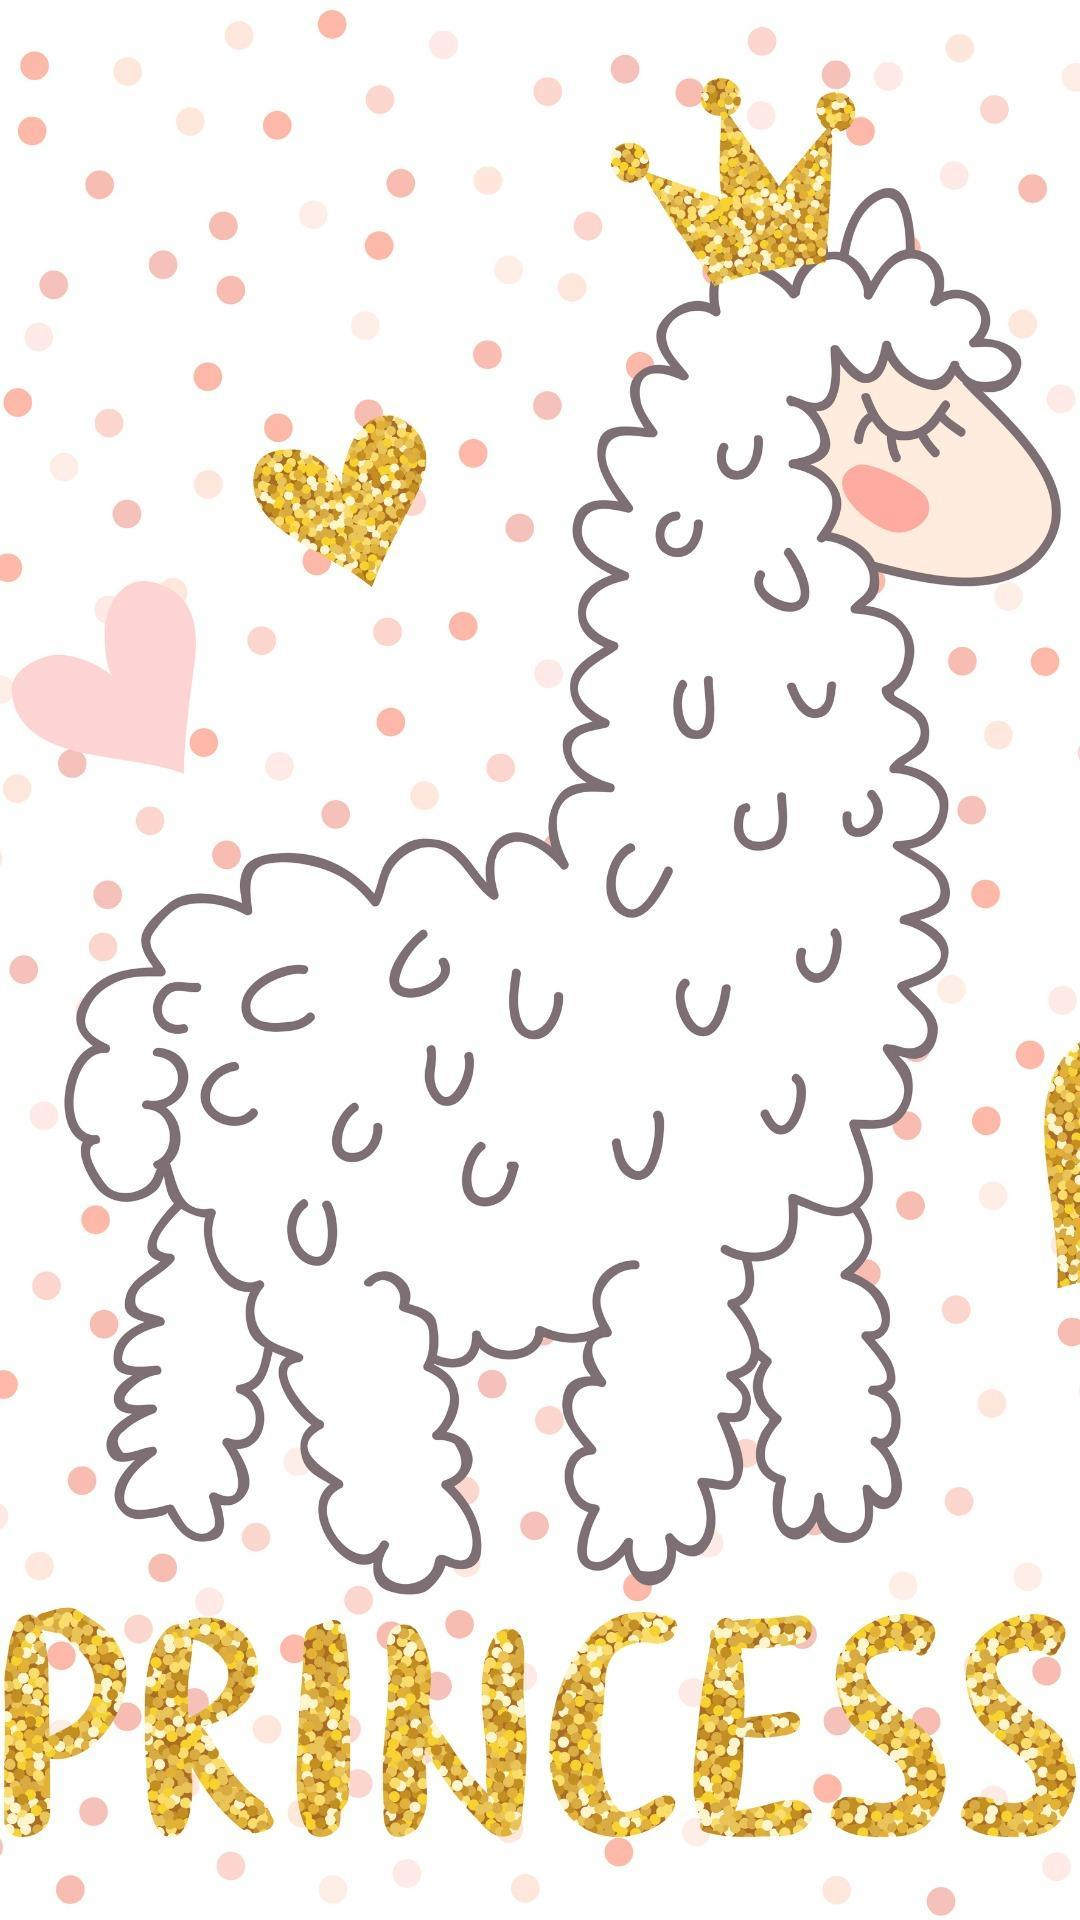 Cute Llama Wallpapers for Android   APK Download 1080x1920